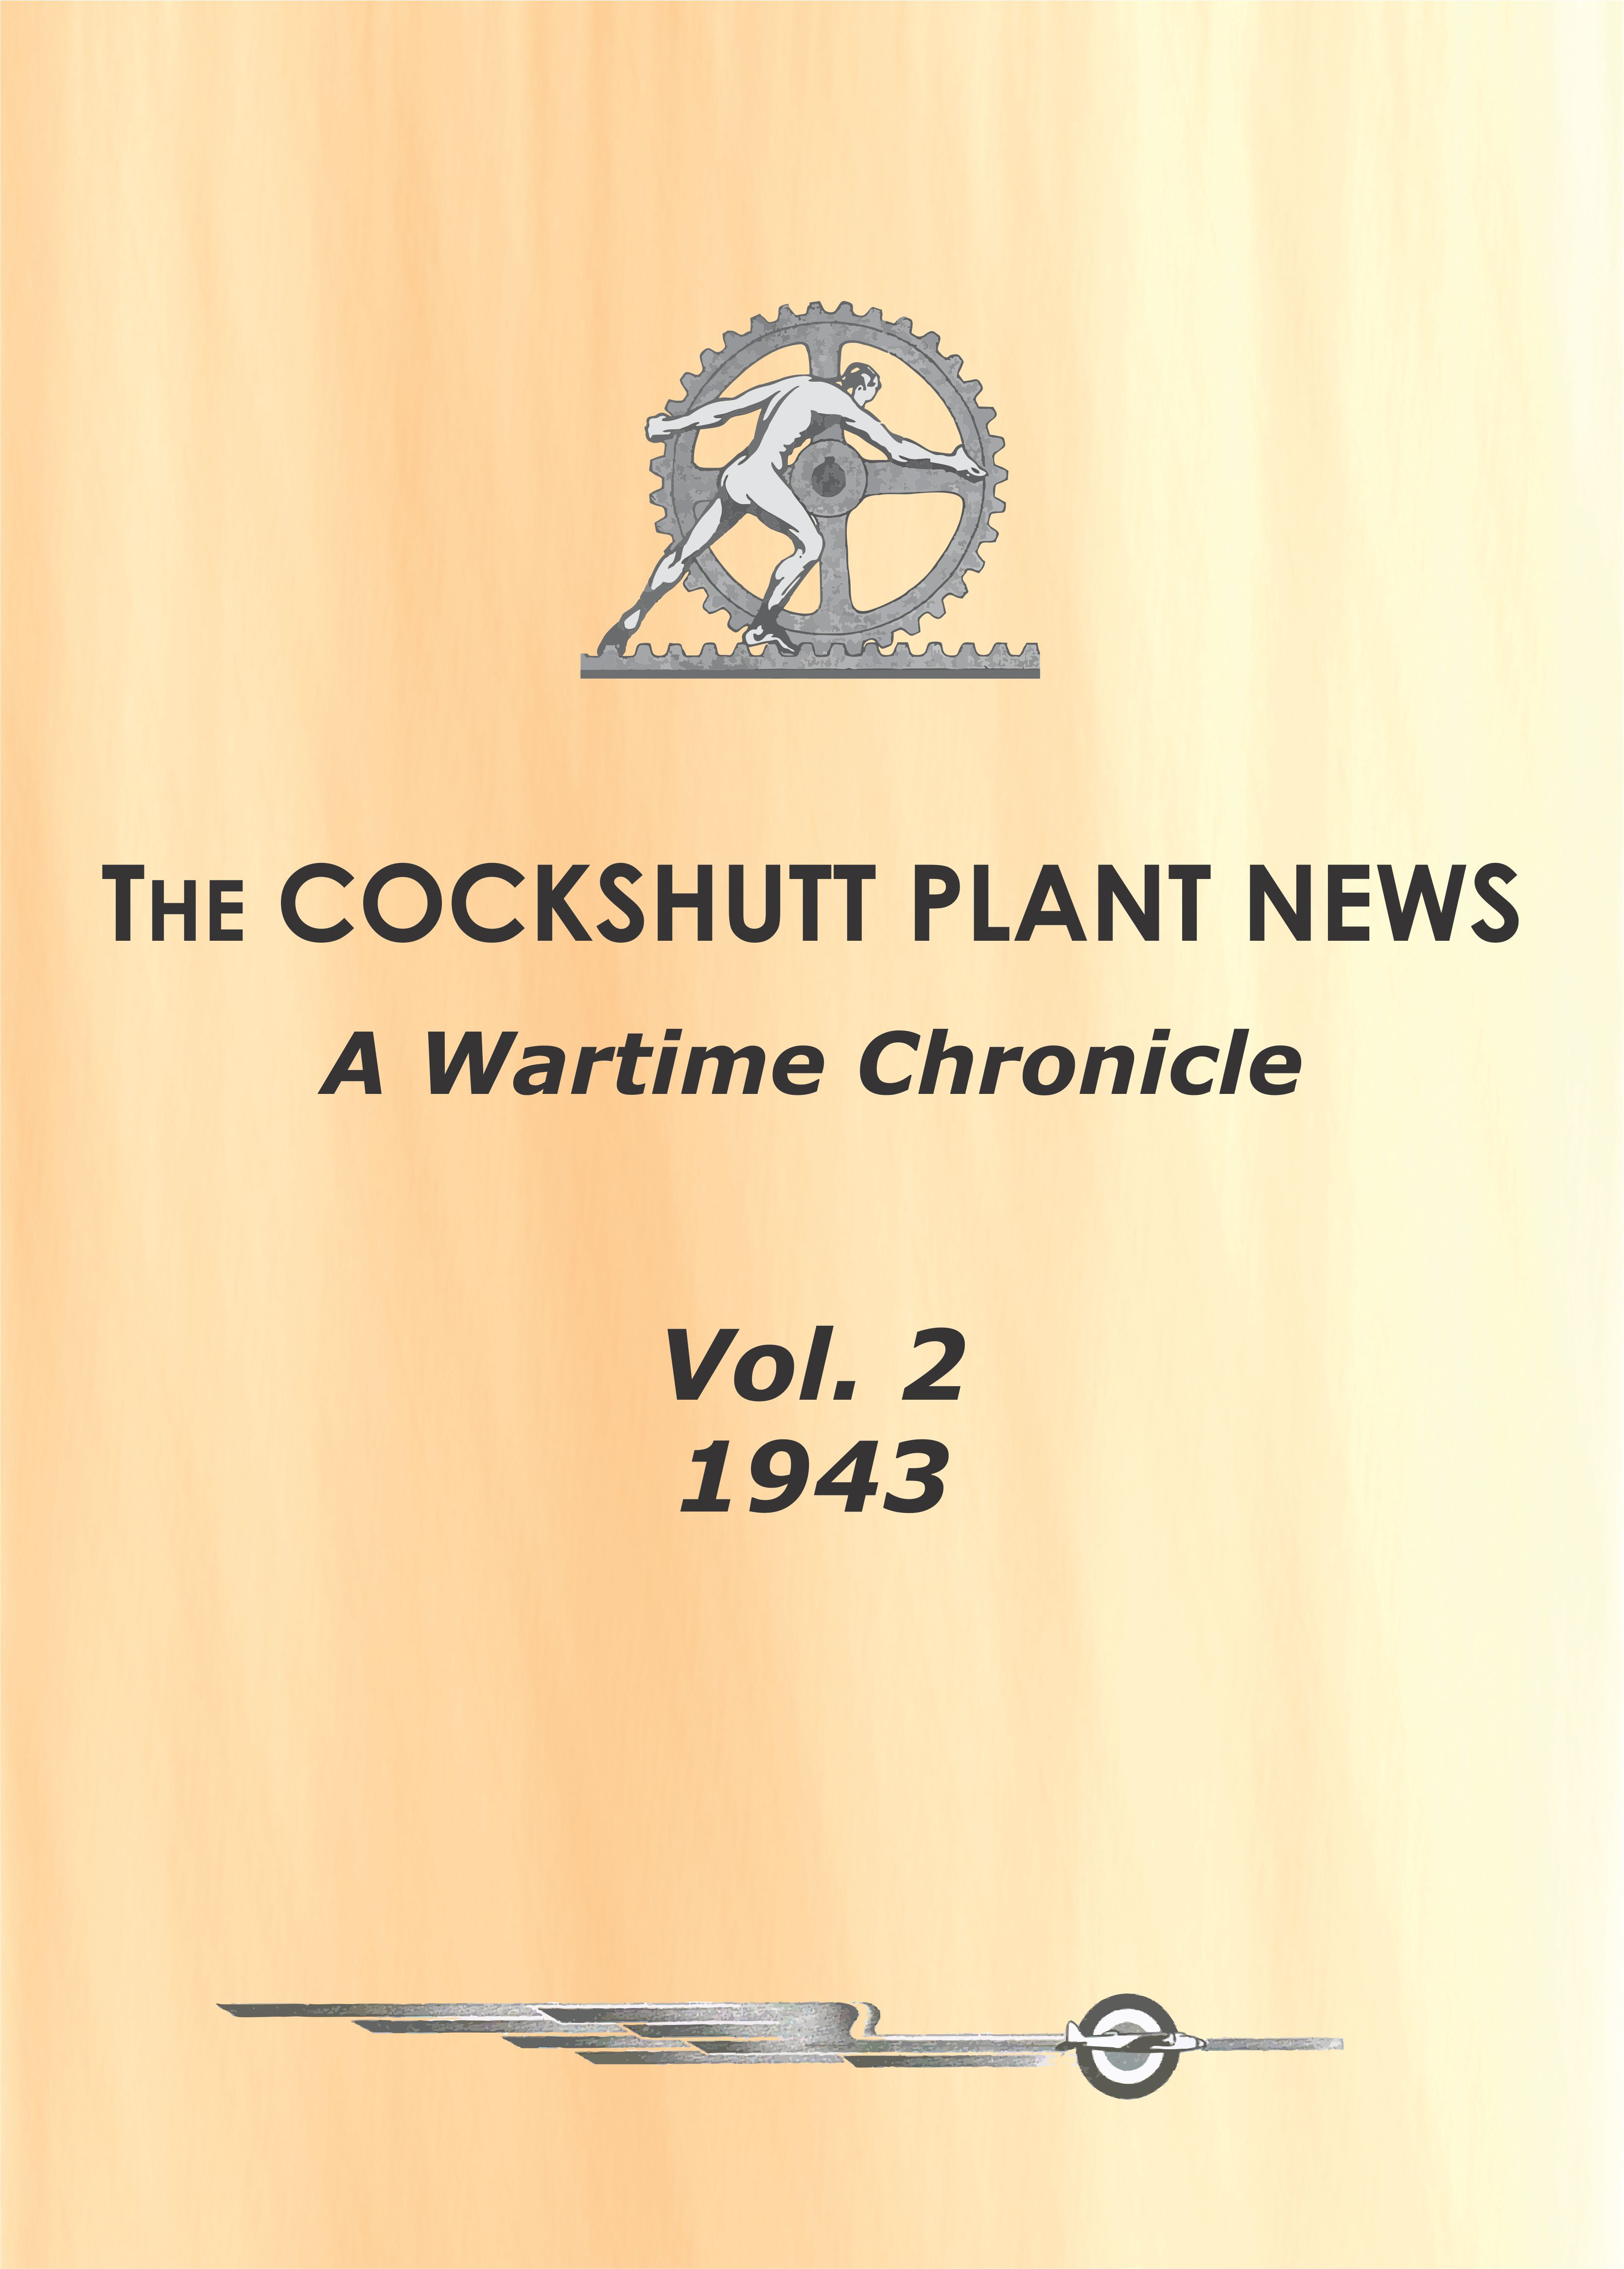 Cockshutt Plant News Vol 2 -1943